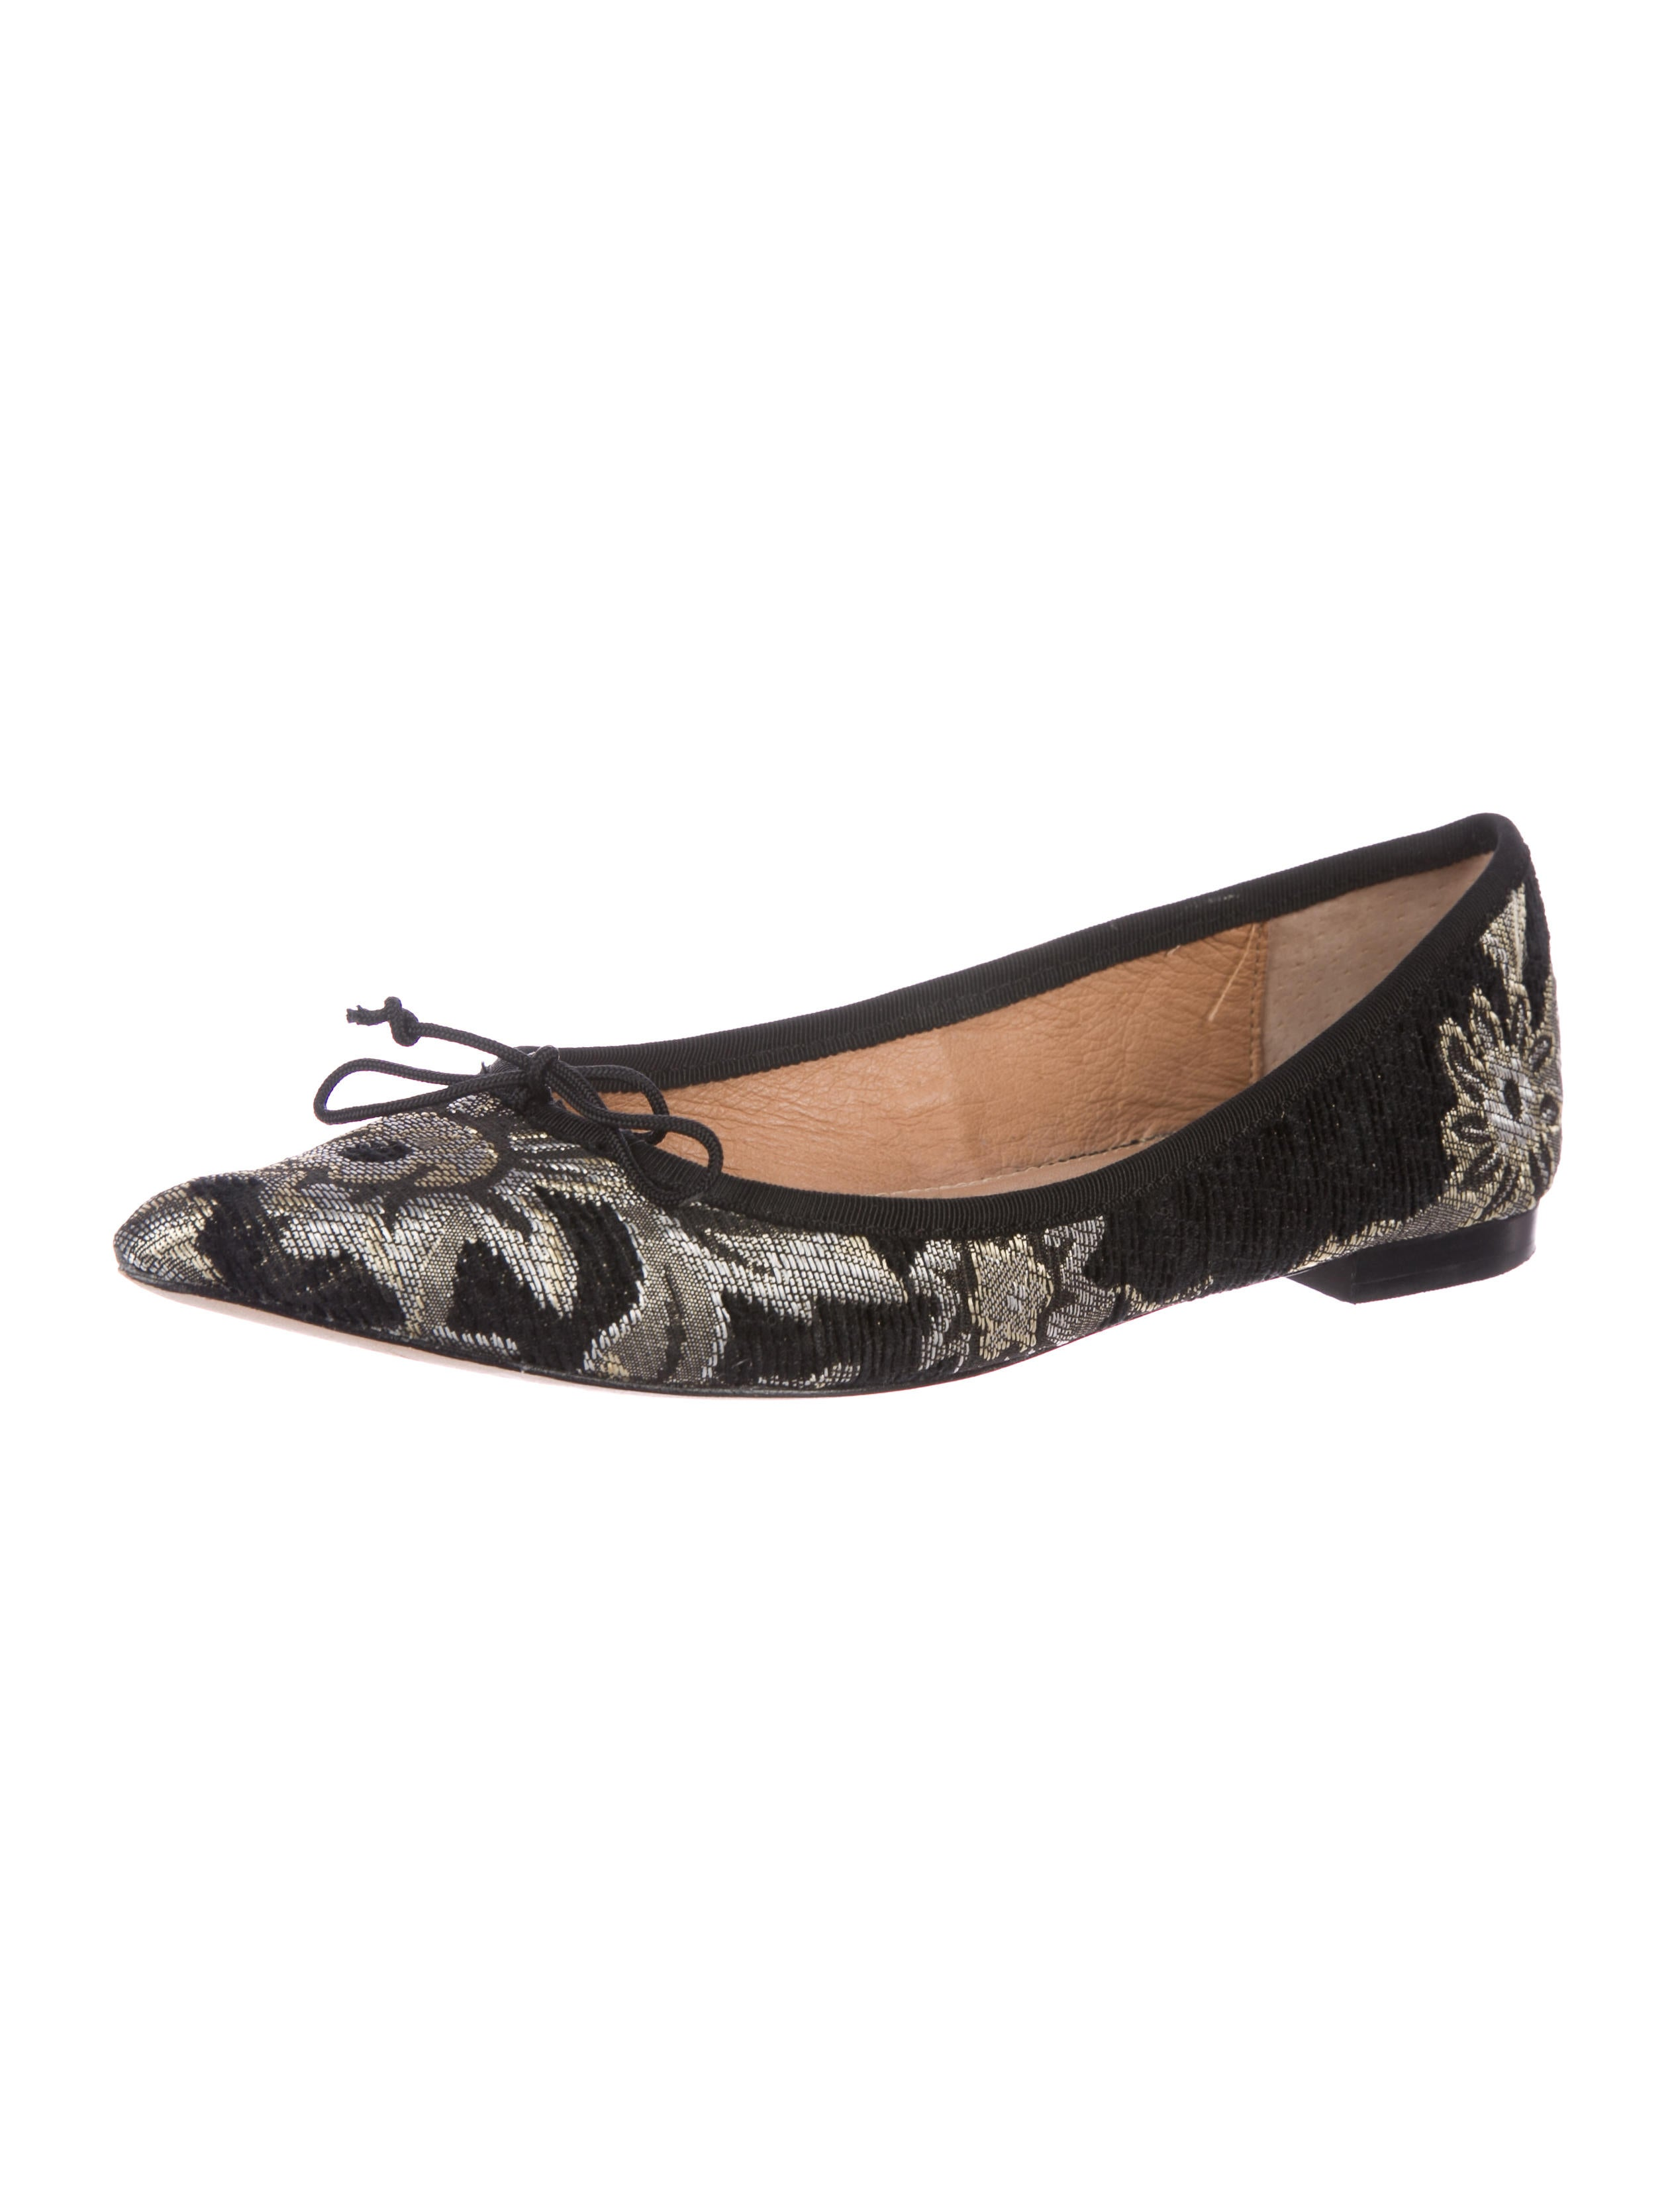 top quality cheap price free shipping cheapest price Corso Como Jacquard Pointed-Toe Flats n9D8dW